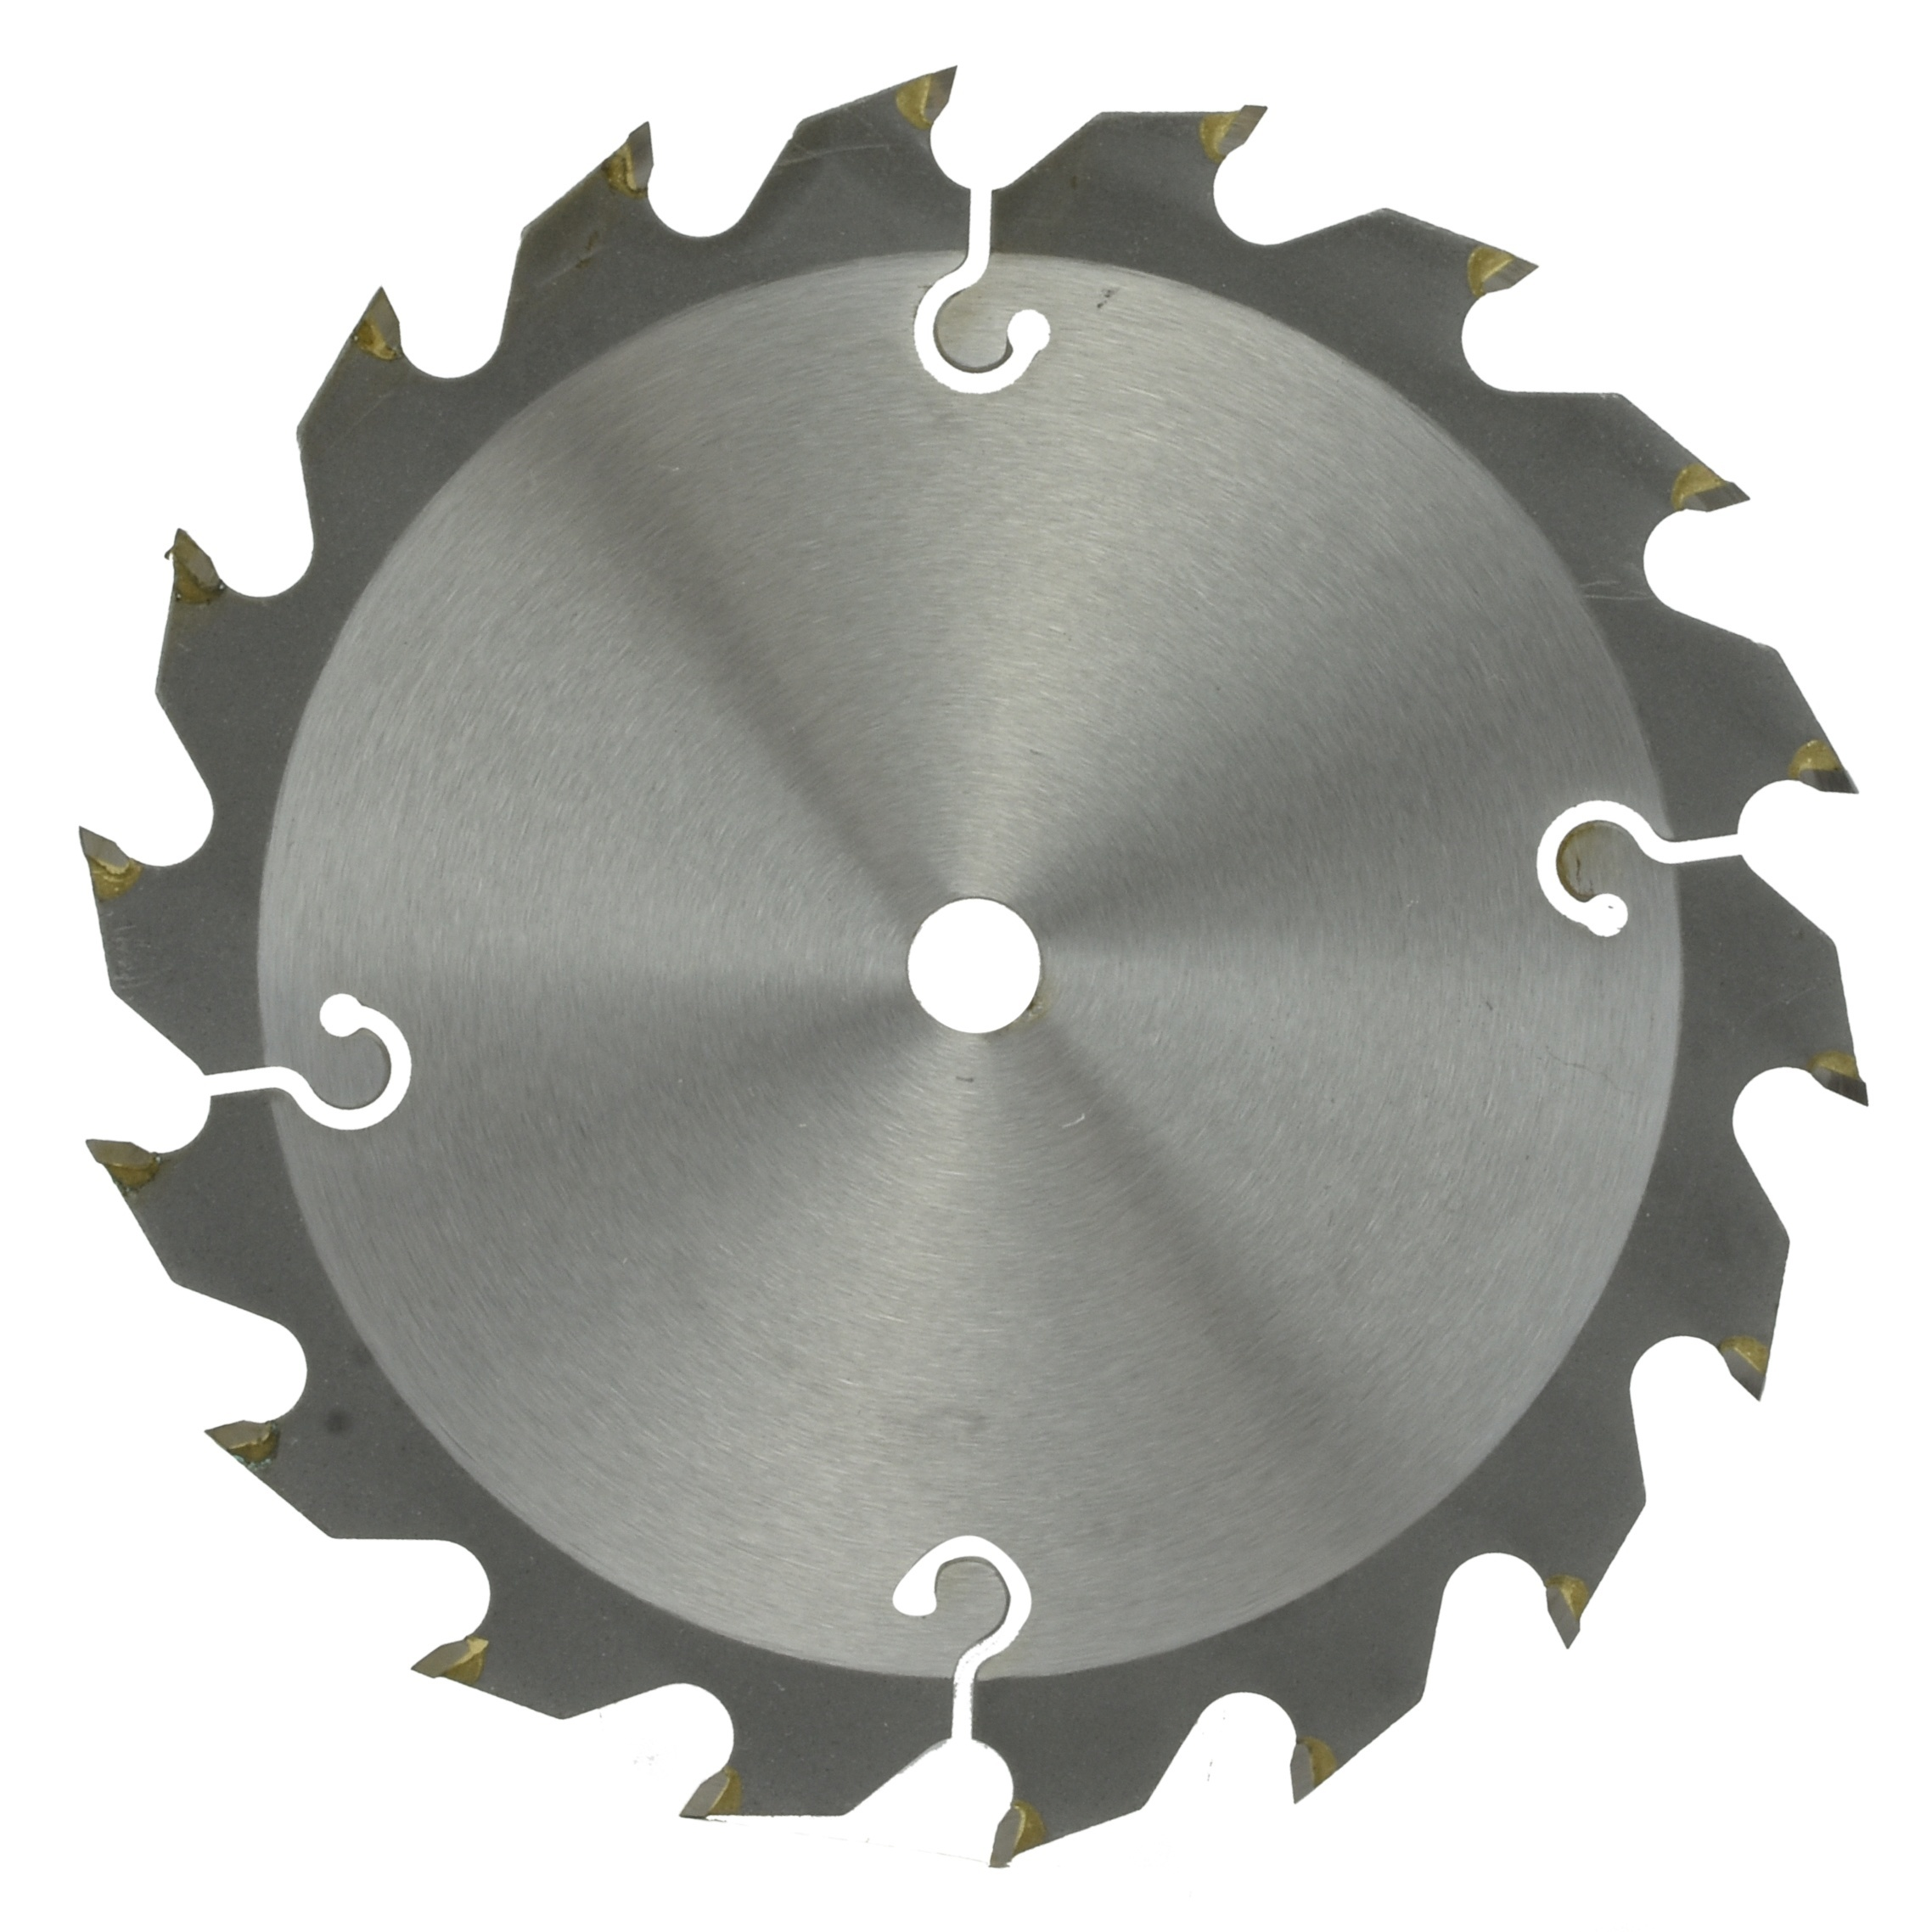 Table Saw Blades For Wood Carbide Tipped 5 3 8 Inch X 18 Teeth Ebay